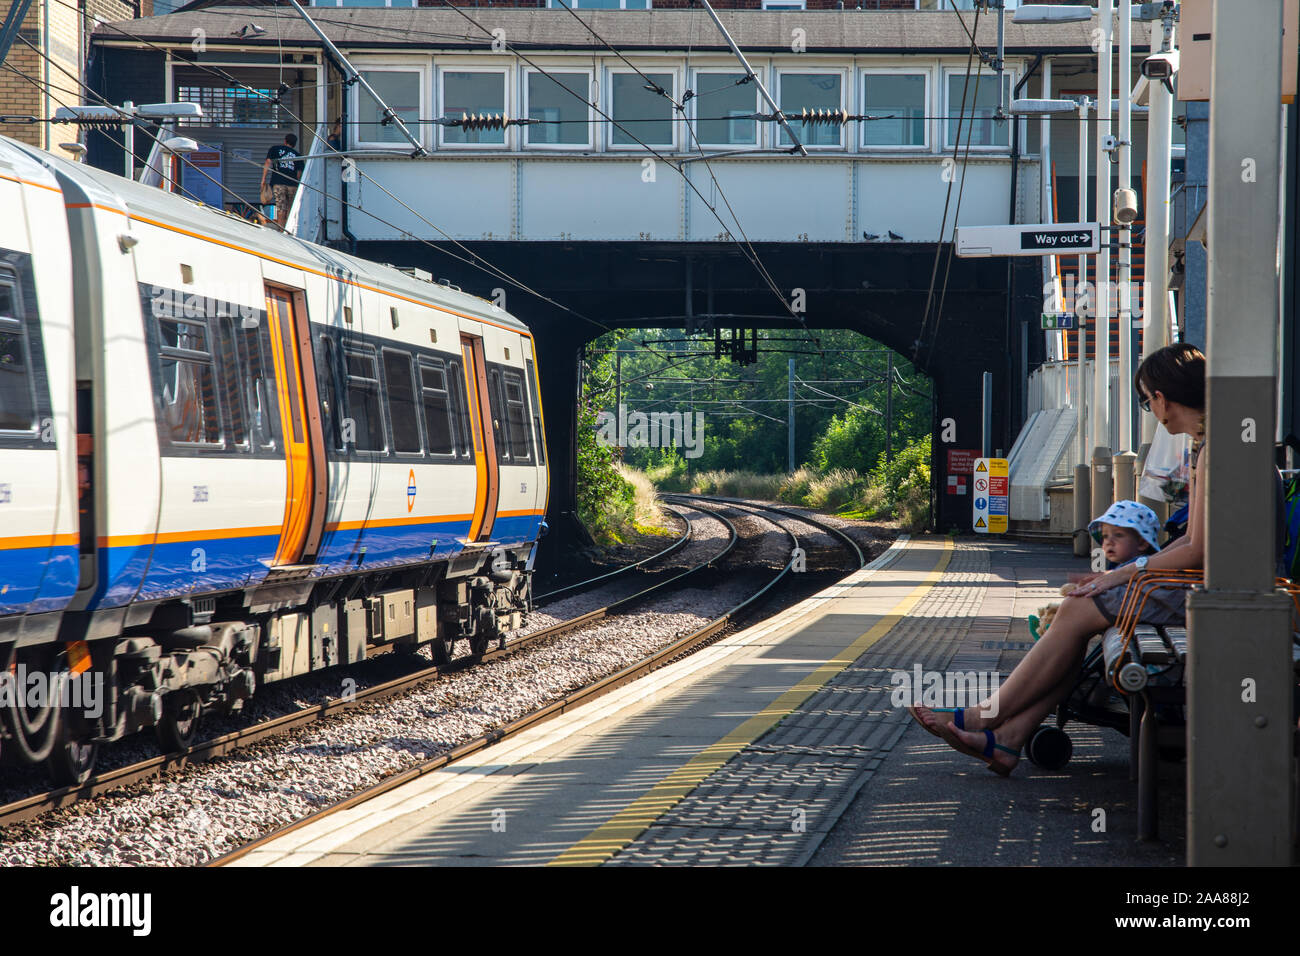 London, England, UK - July 24, 2019: Passengers wait for a train at Kensal Rise Station on a sunny summer day on the London Overground. Stock Photo